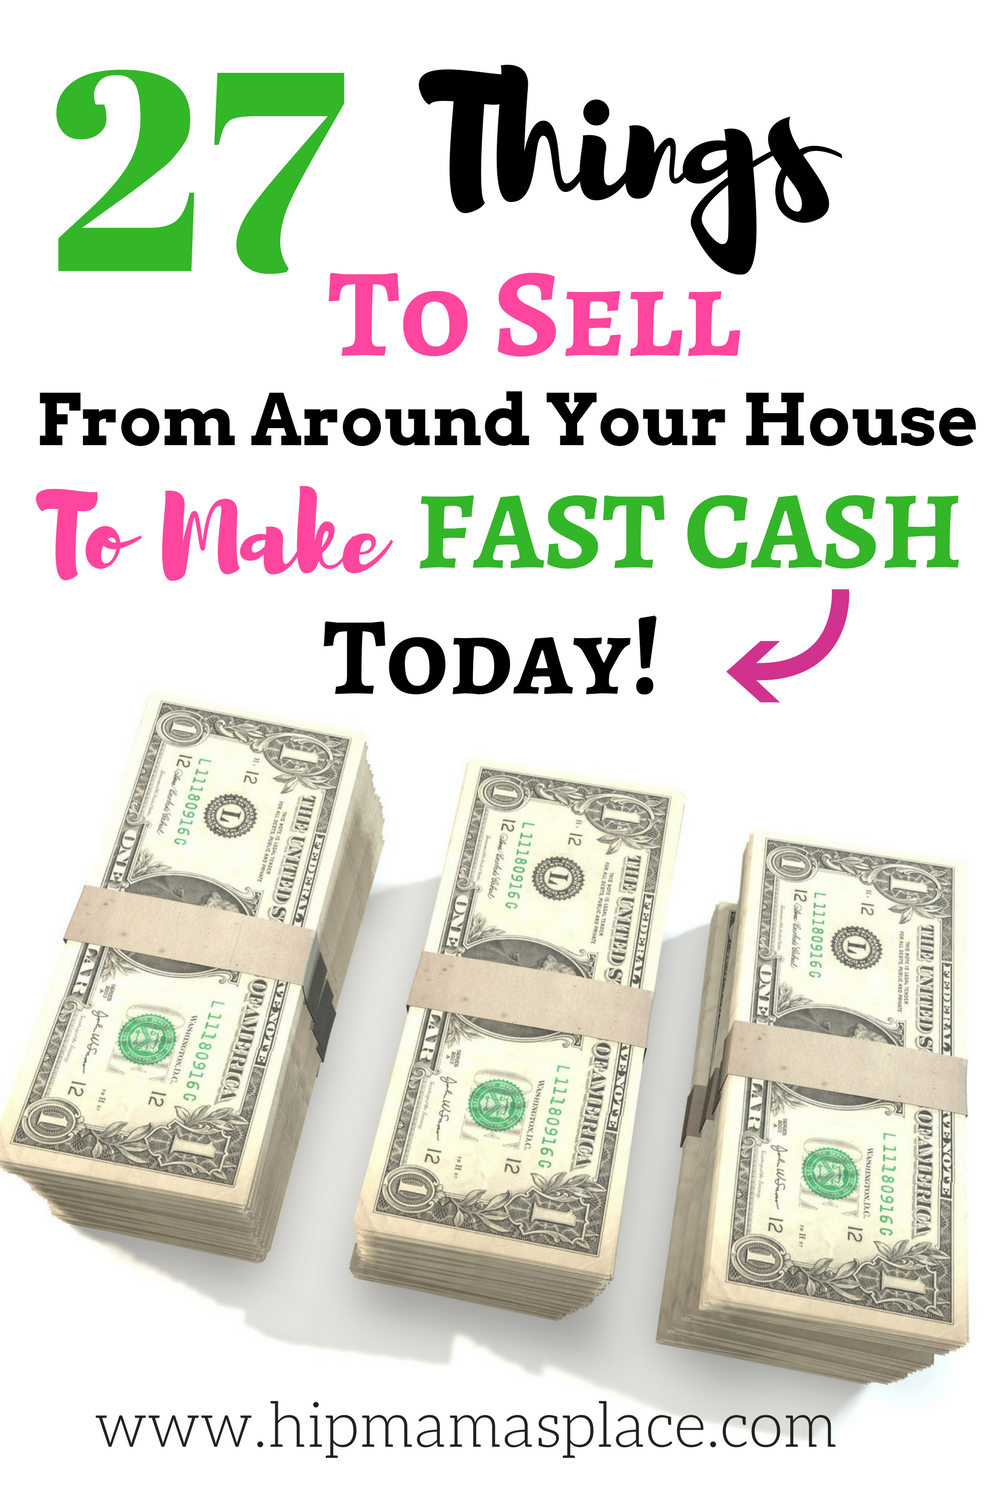 Here are things from around your house to sell for fast cash today!